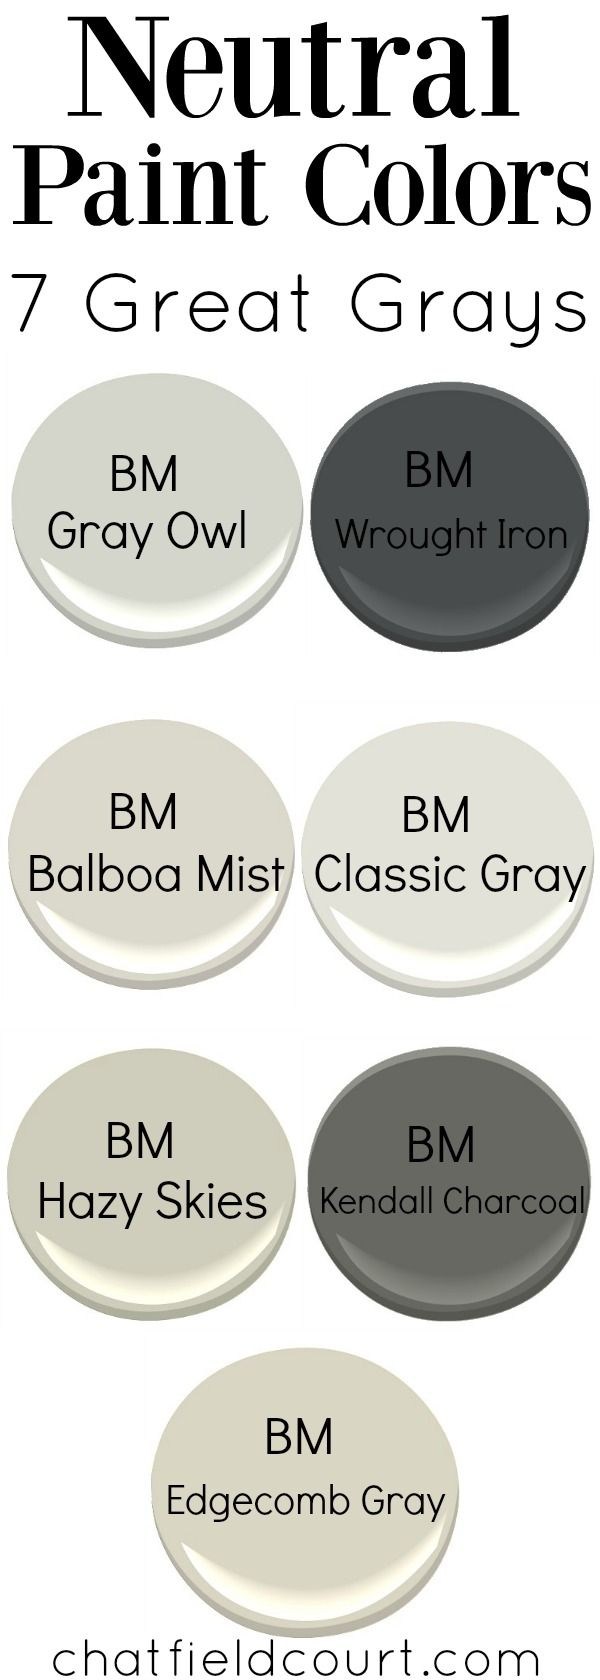 Wh what are good colors for bedrooms - 7 Great Gray Paint Colors